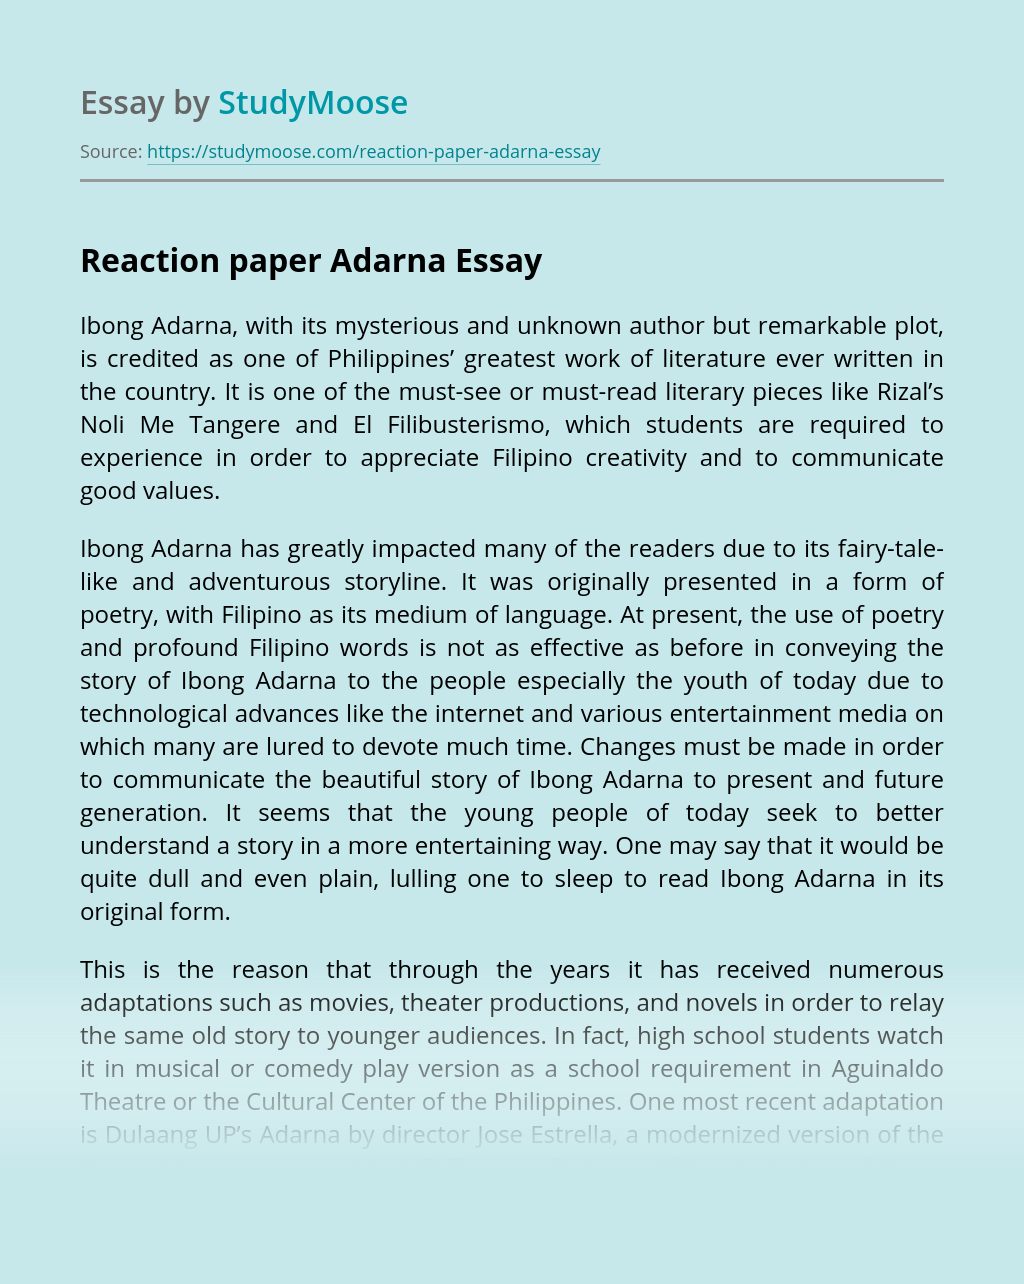 Reaction paper Adarna